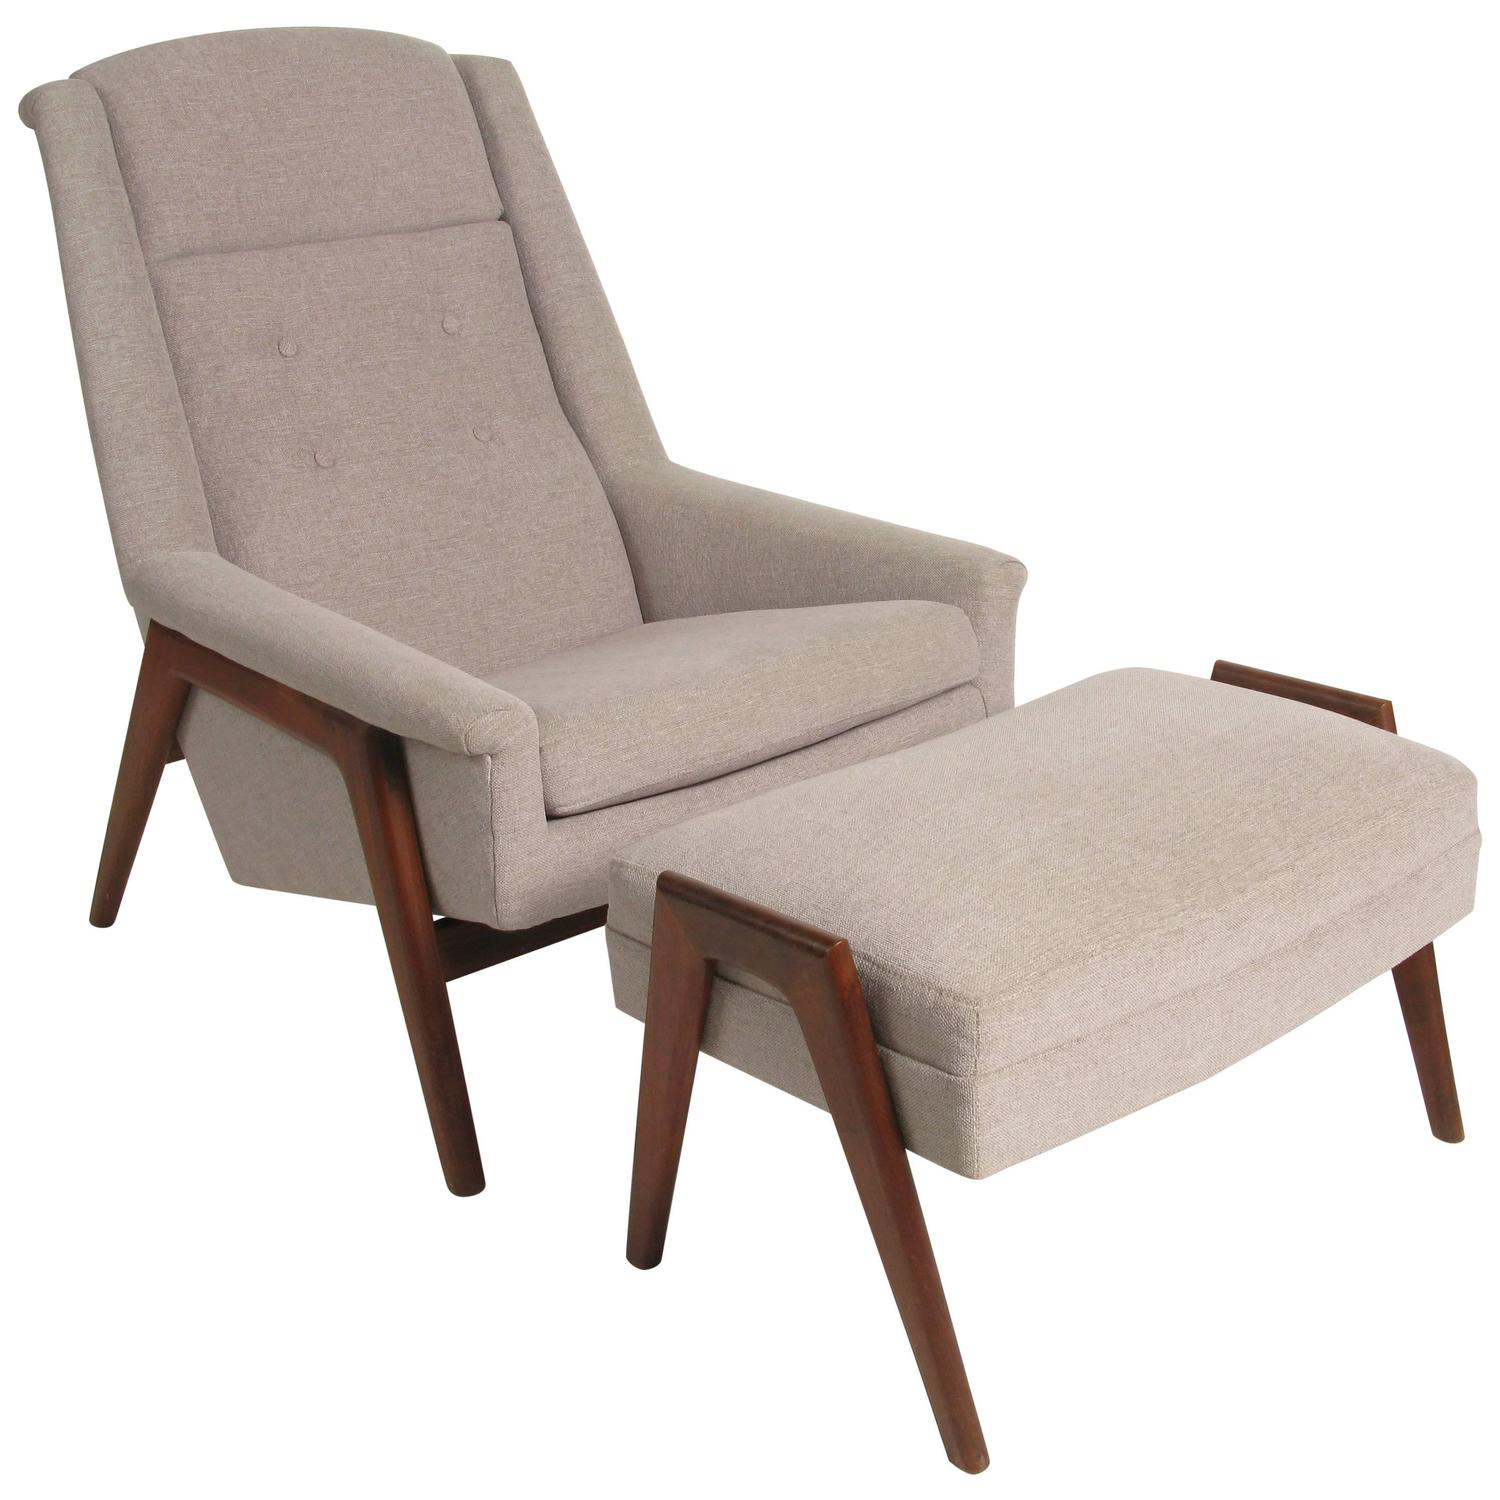 Lounge chair and ottoman by folke ohlsson for dux of sweden at 1stdibs